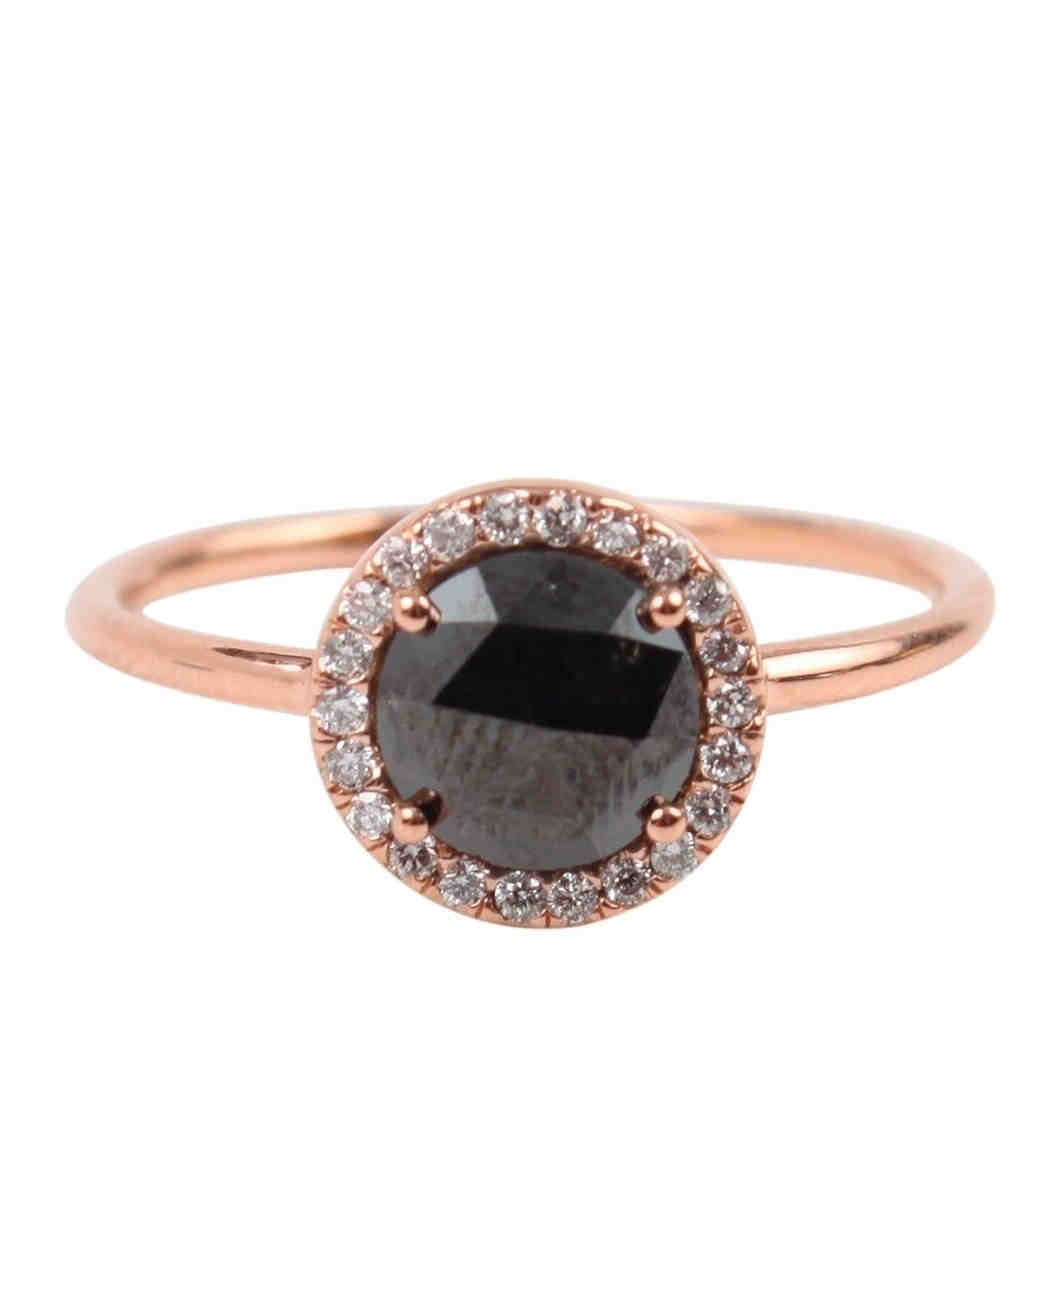 black-diamond-engagement-rings-catbird-blanca-monros-gomez-0814.jpg